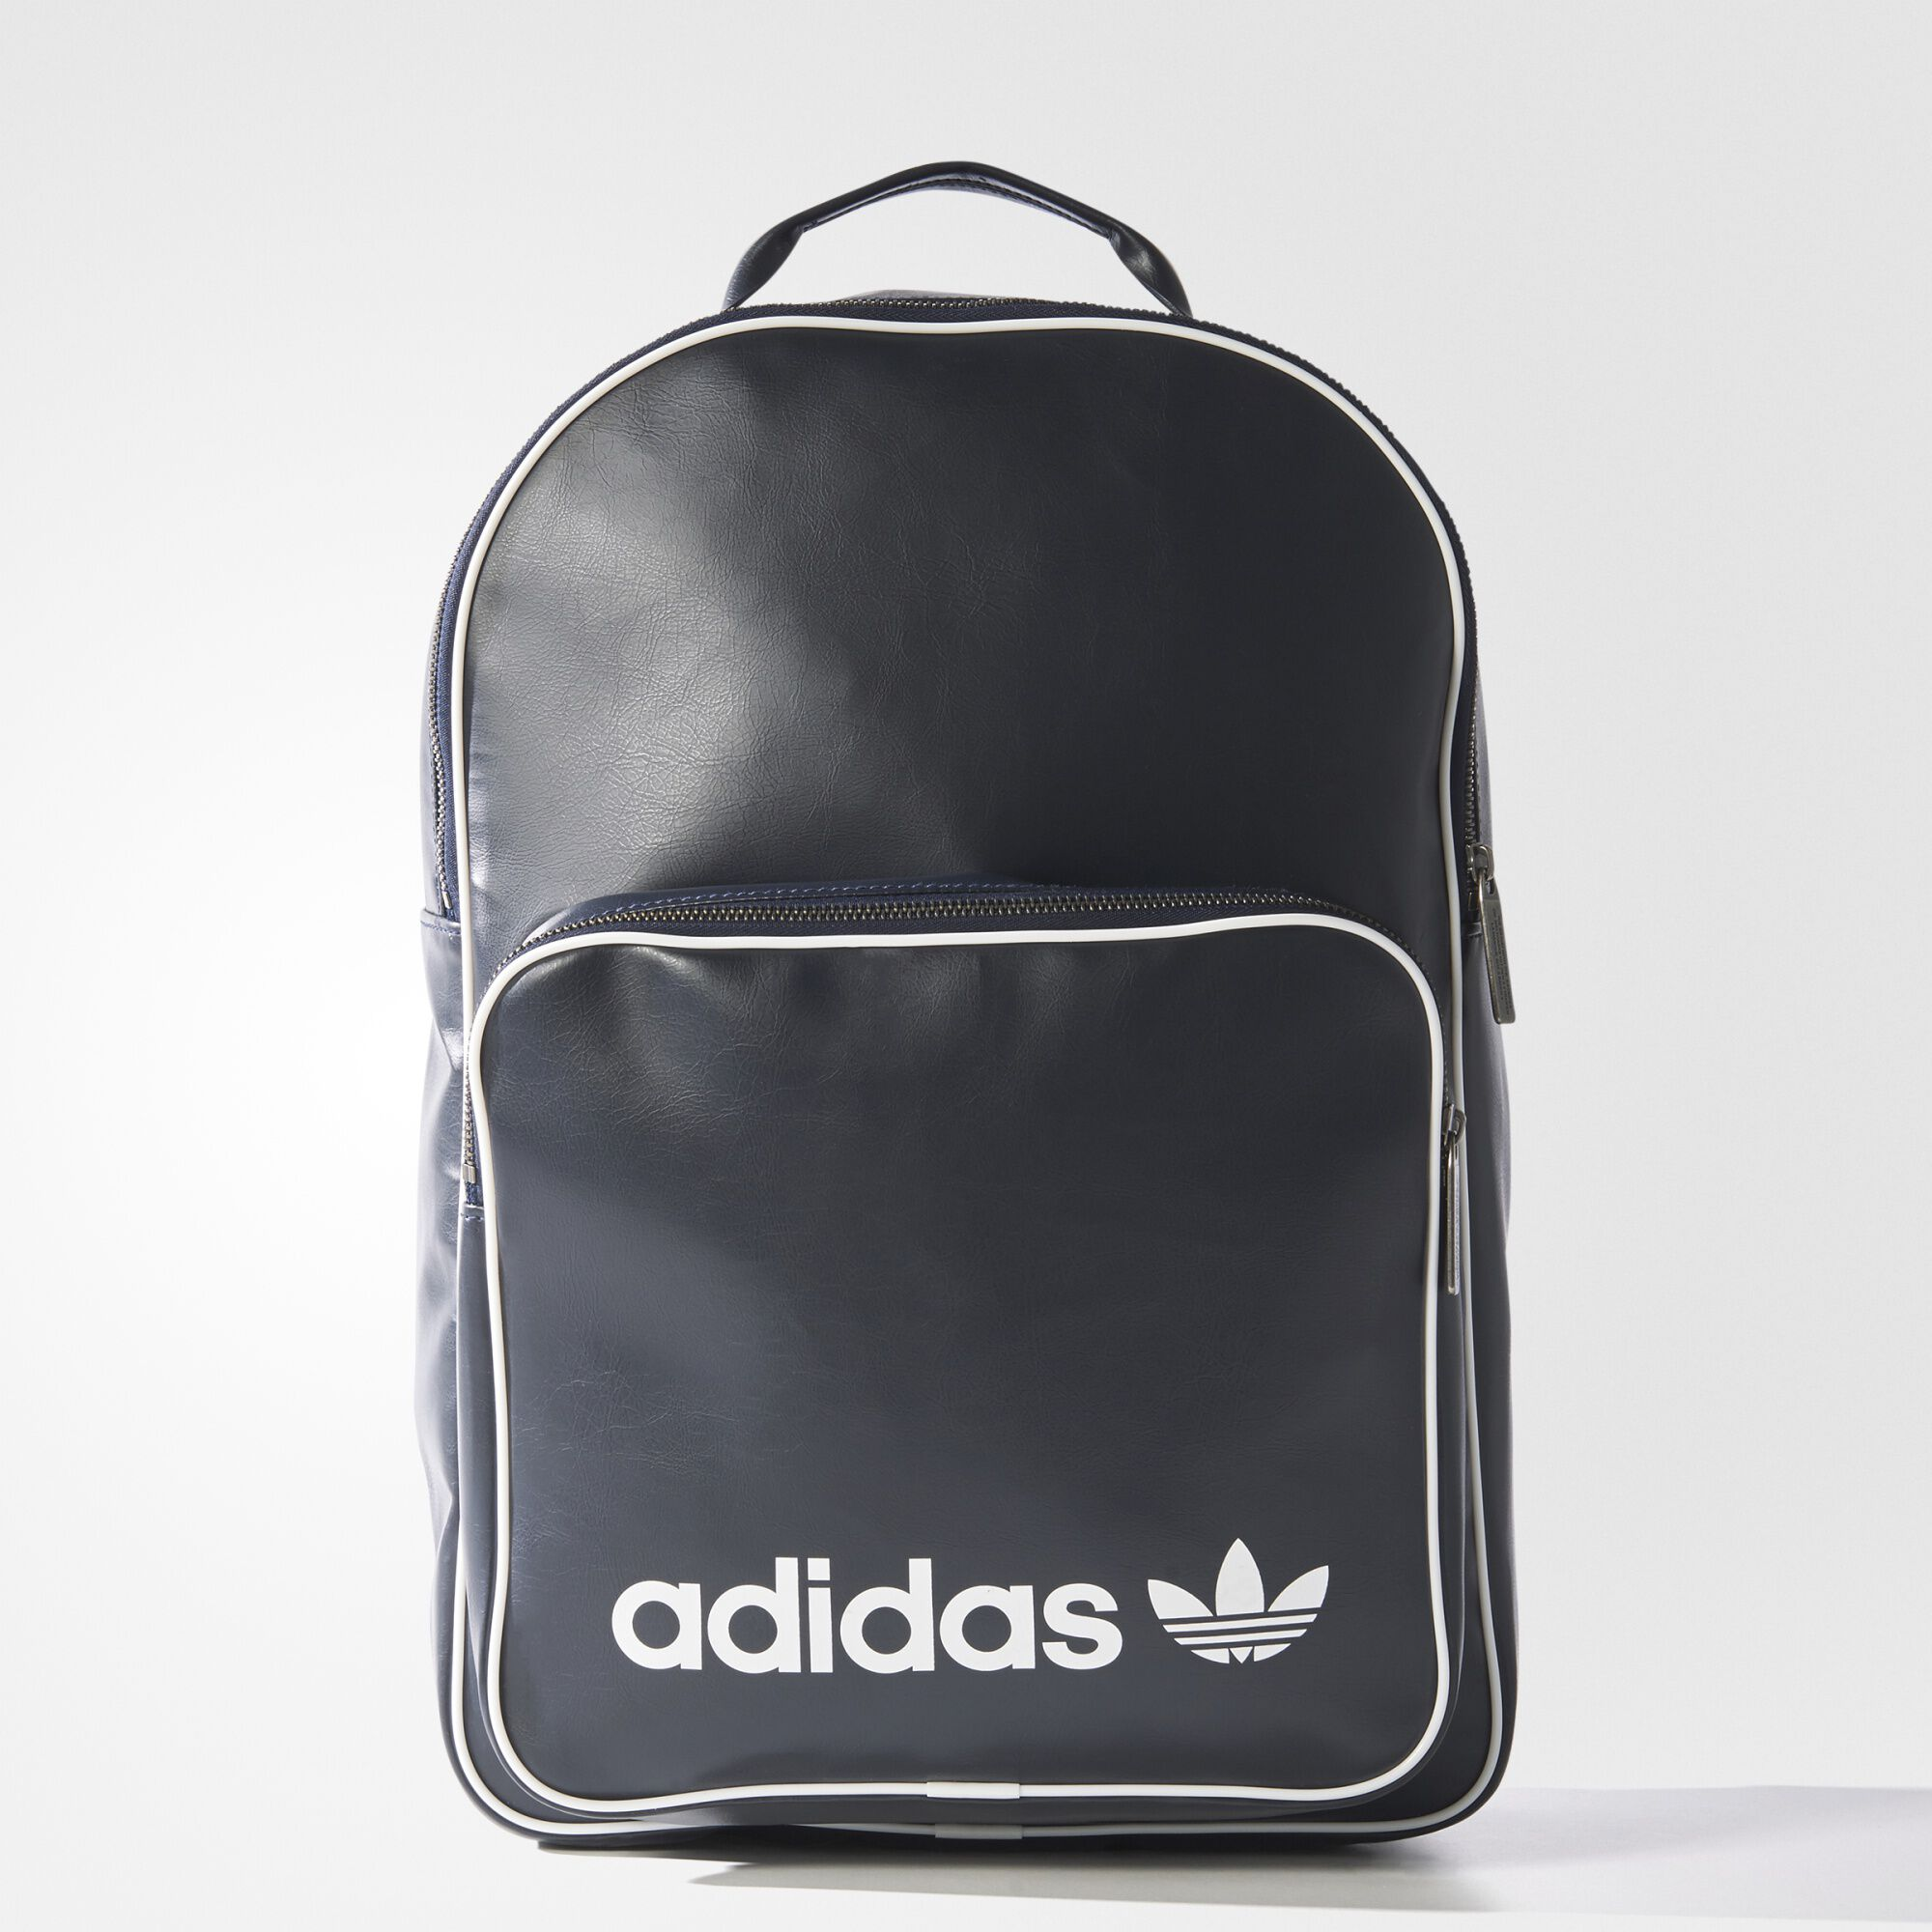 5c09ad41d6e9 Buy adidas haversack   OFF55% Discounted